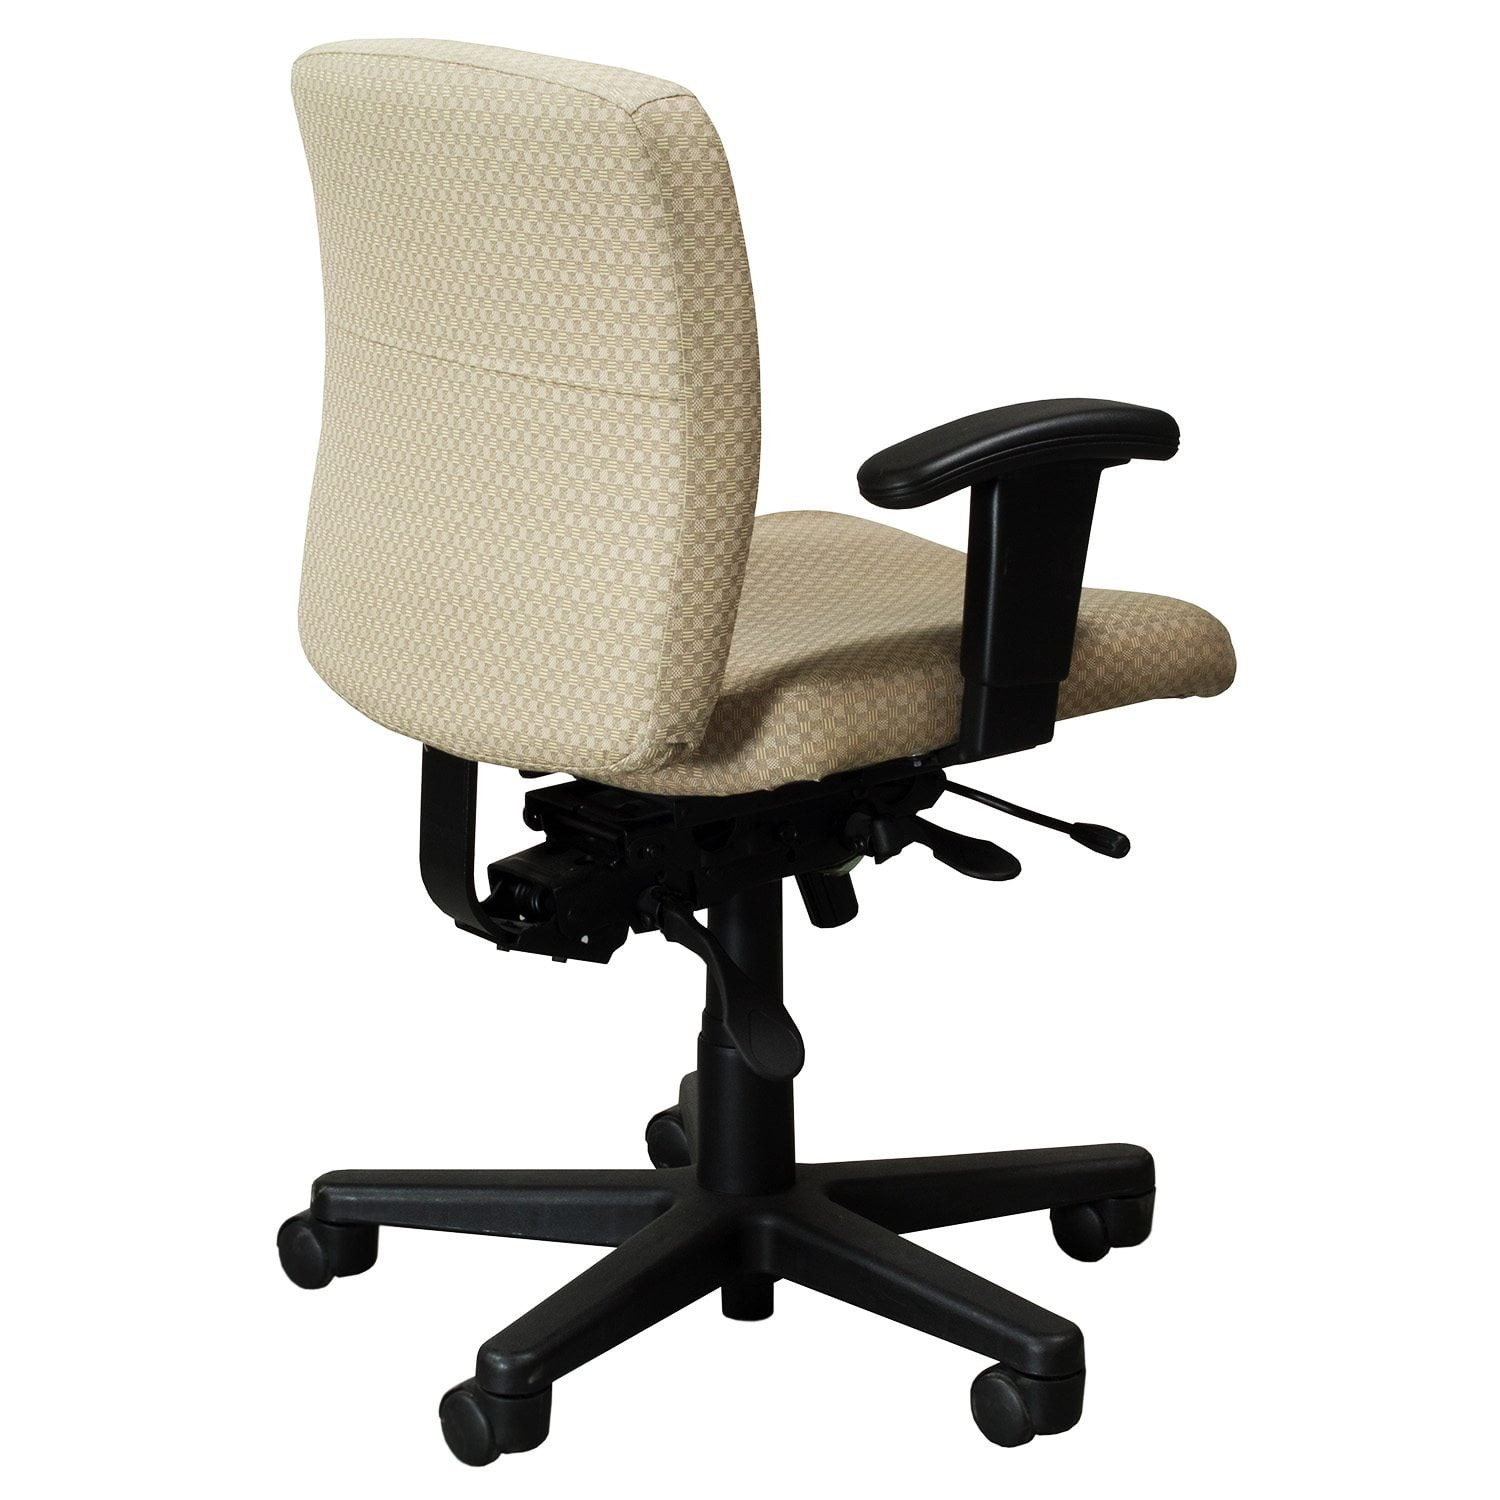 yellow office chair protector covers for recliners harter colleague used task checker